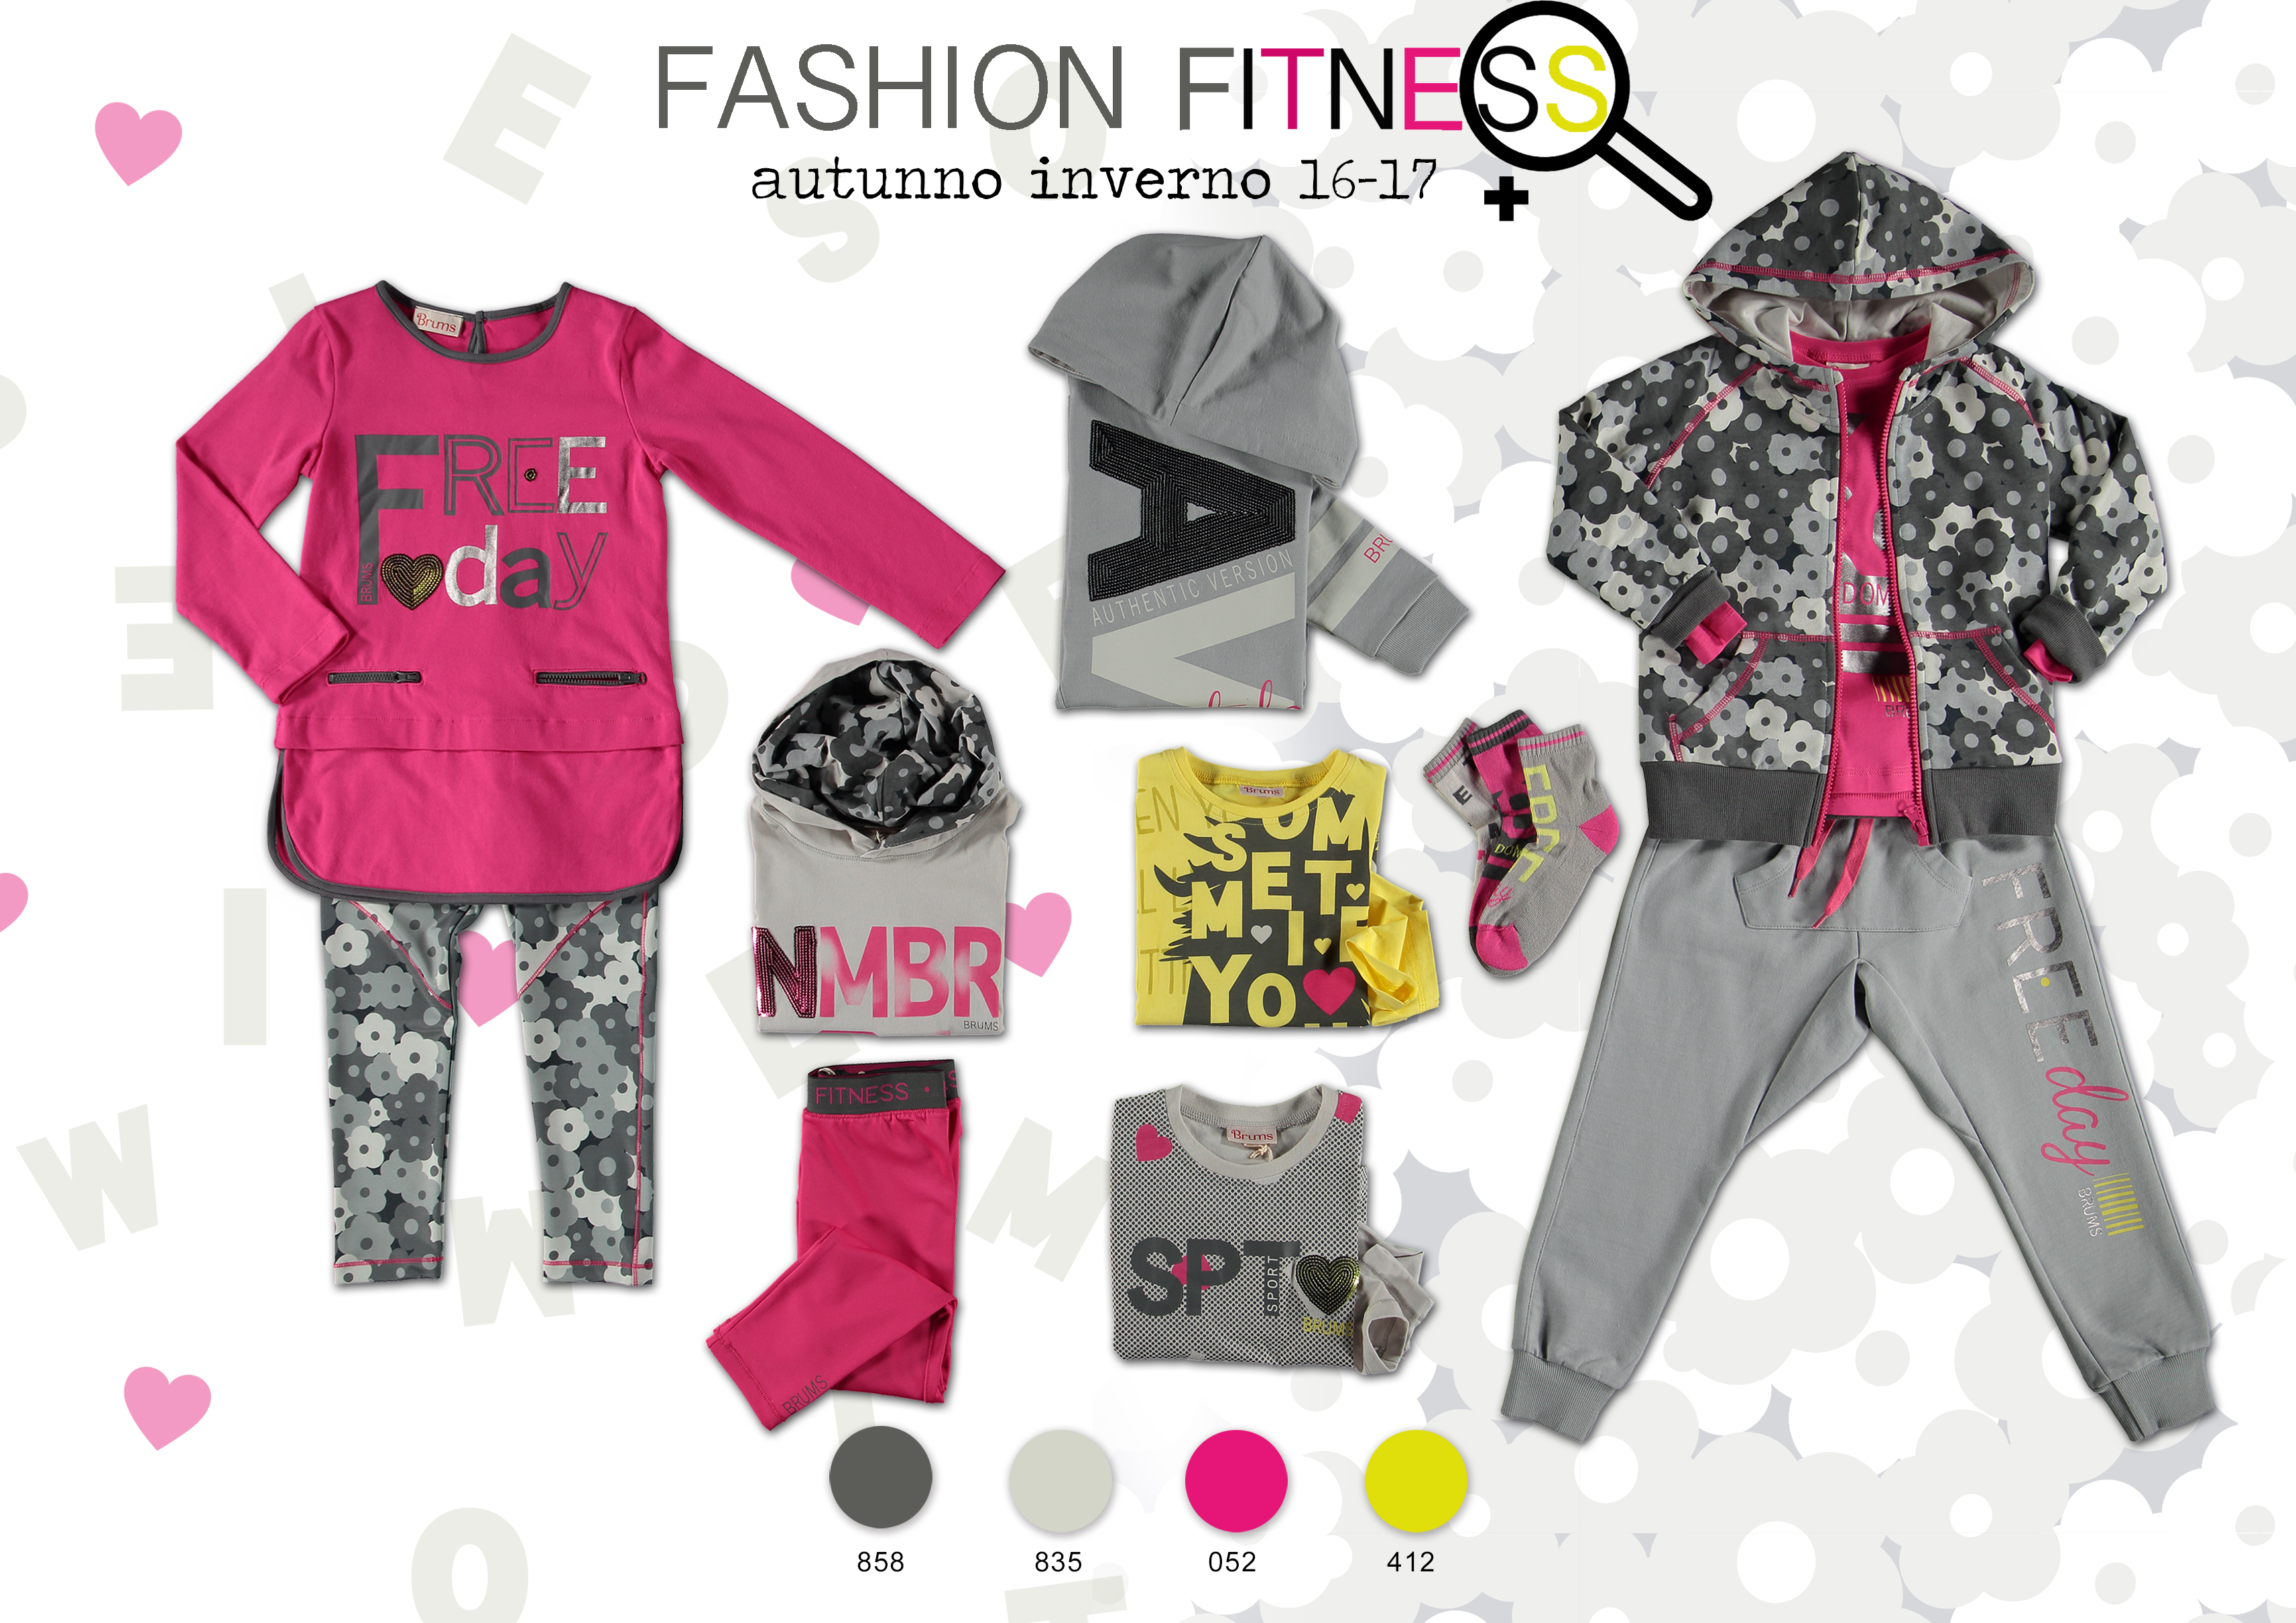 GIRL fashion fitness